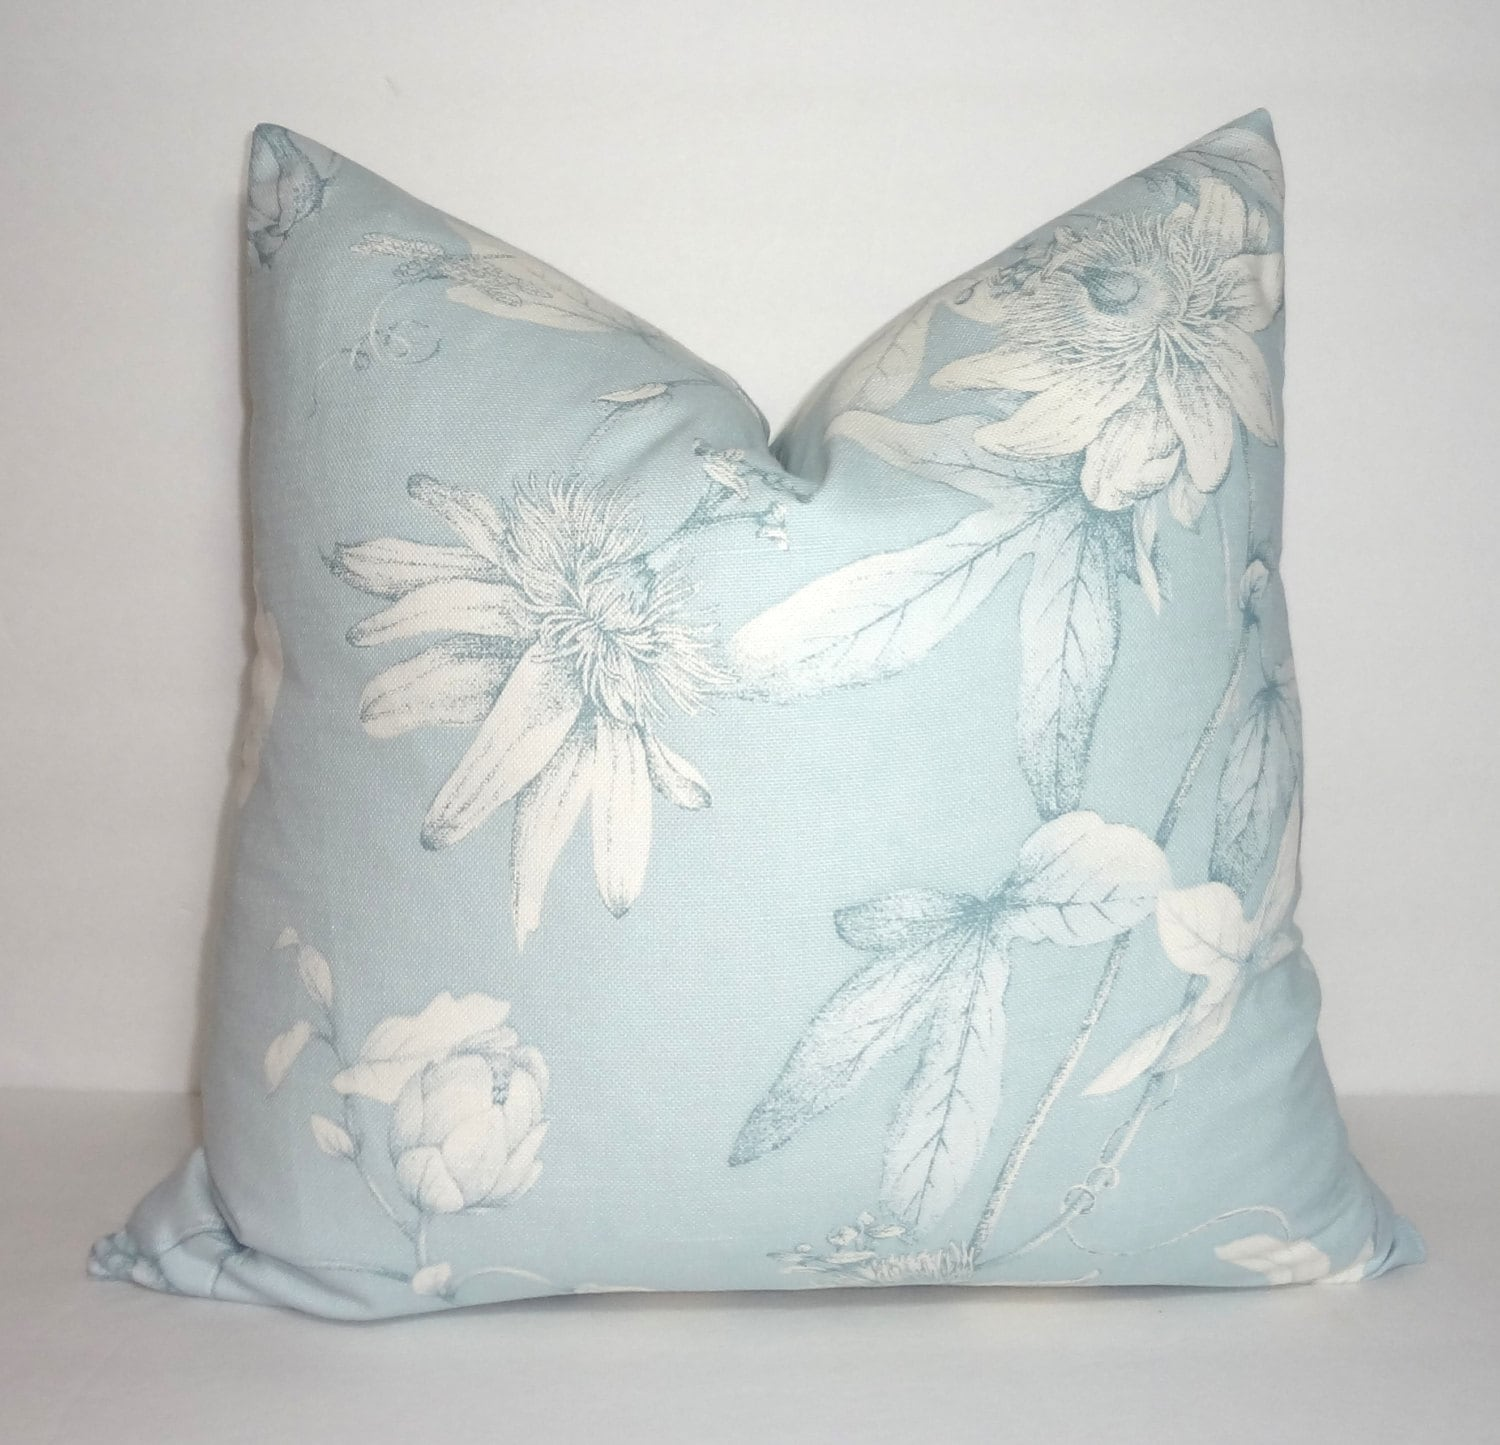 Light Blue Throw Pillow Covers : Decorative Pillow Light Blue Floral Print Pillow Cover Blue